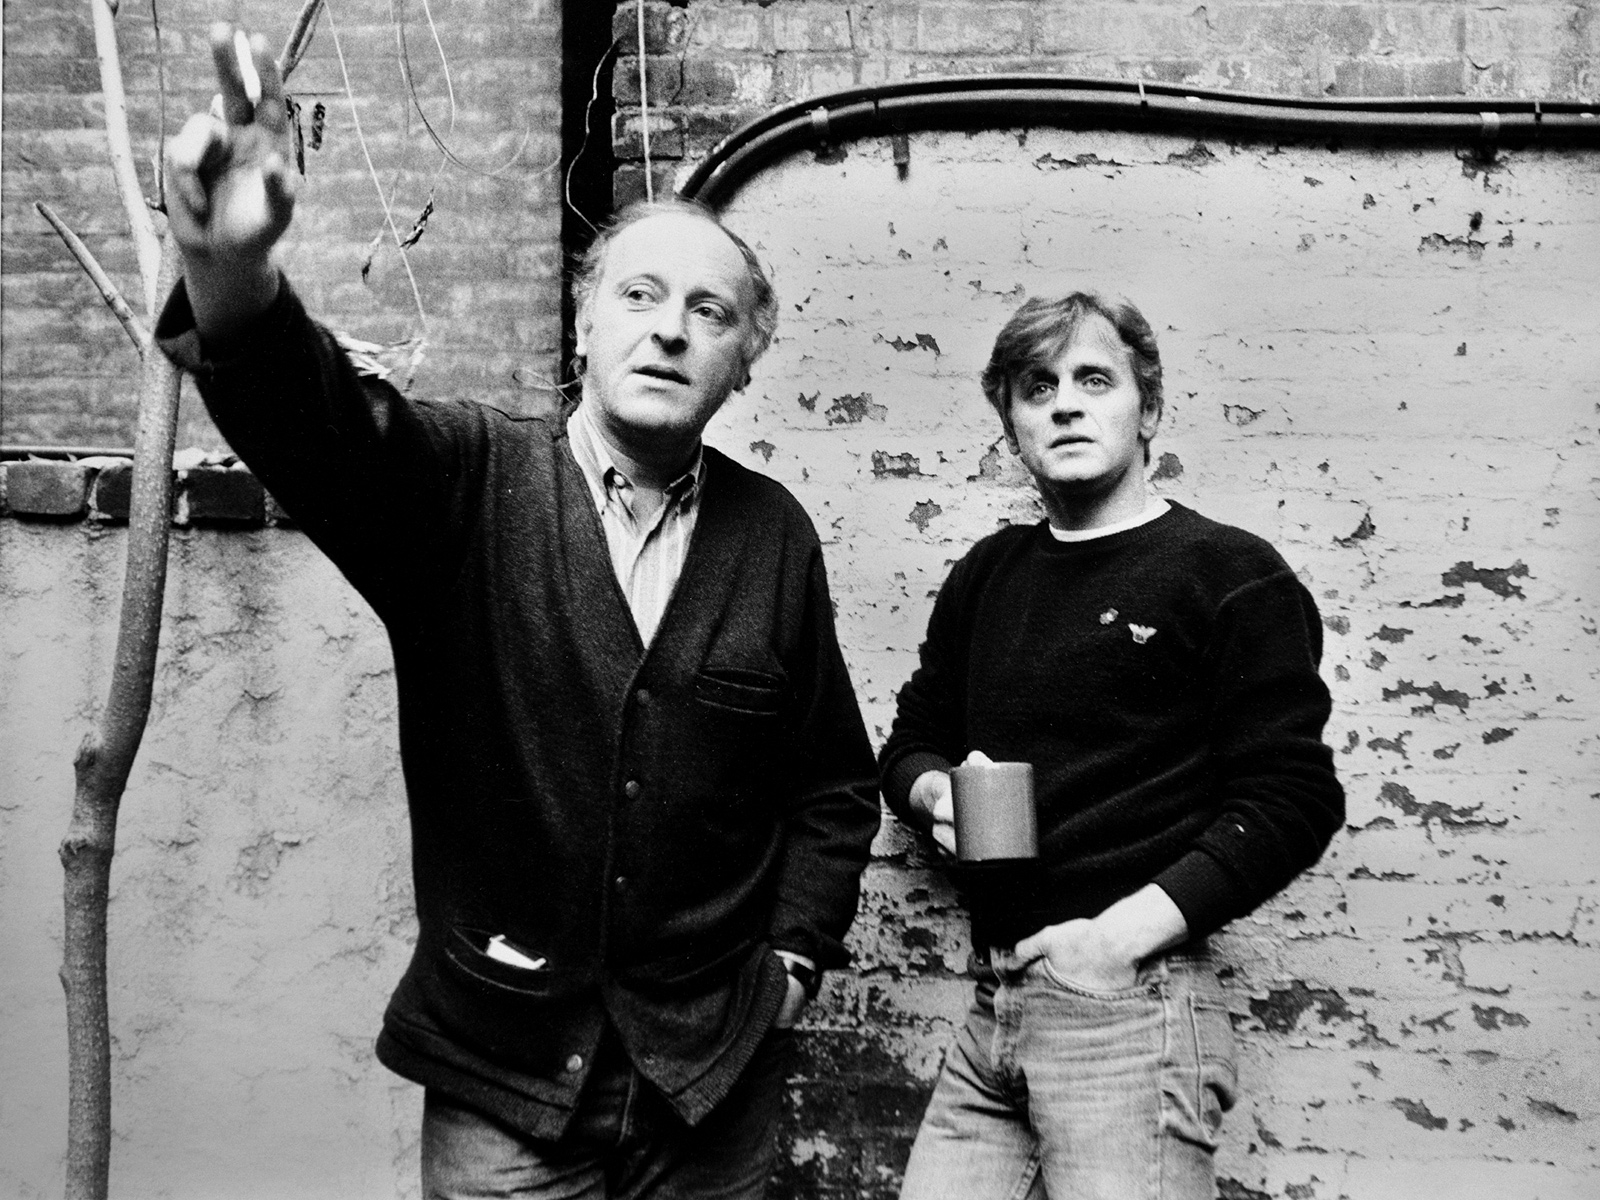 Joseph Brodsky and Mikhail Baryshnikov, New York City, 1985